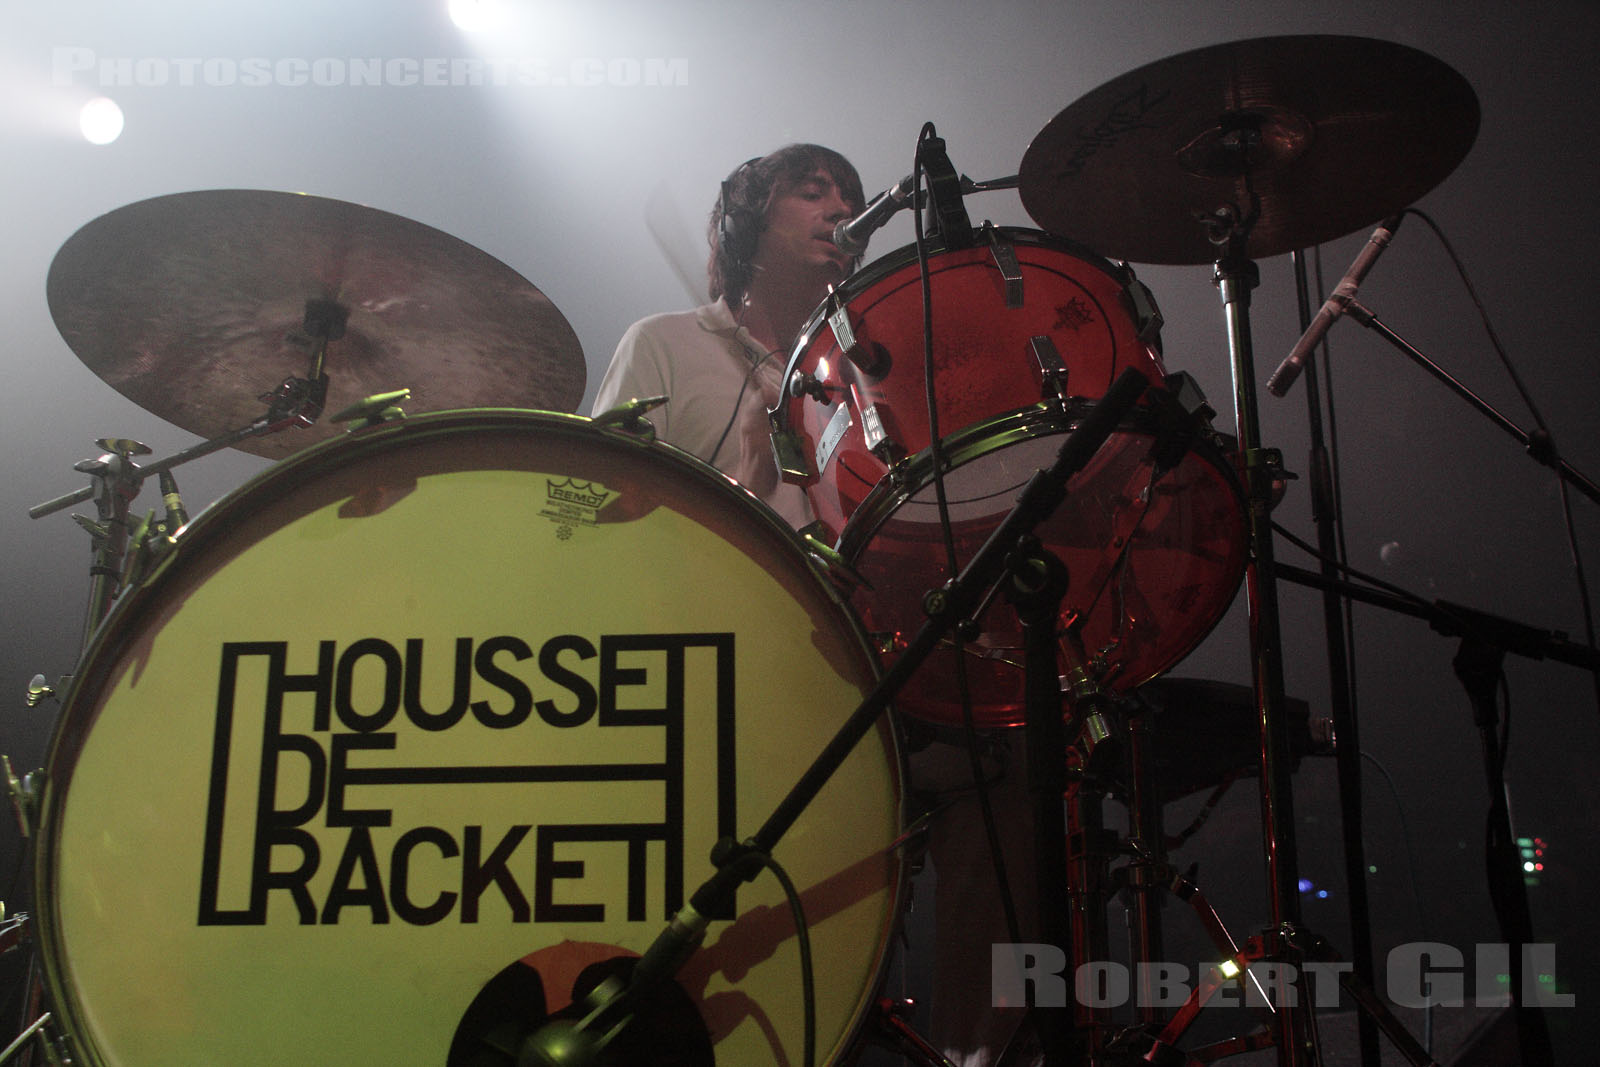 HOUSSE DE RACKET - 2008-11-30 - PARIS - Le Bataclan